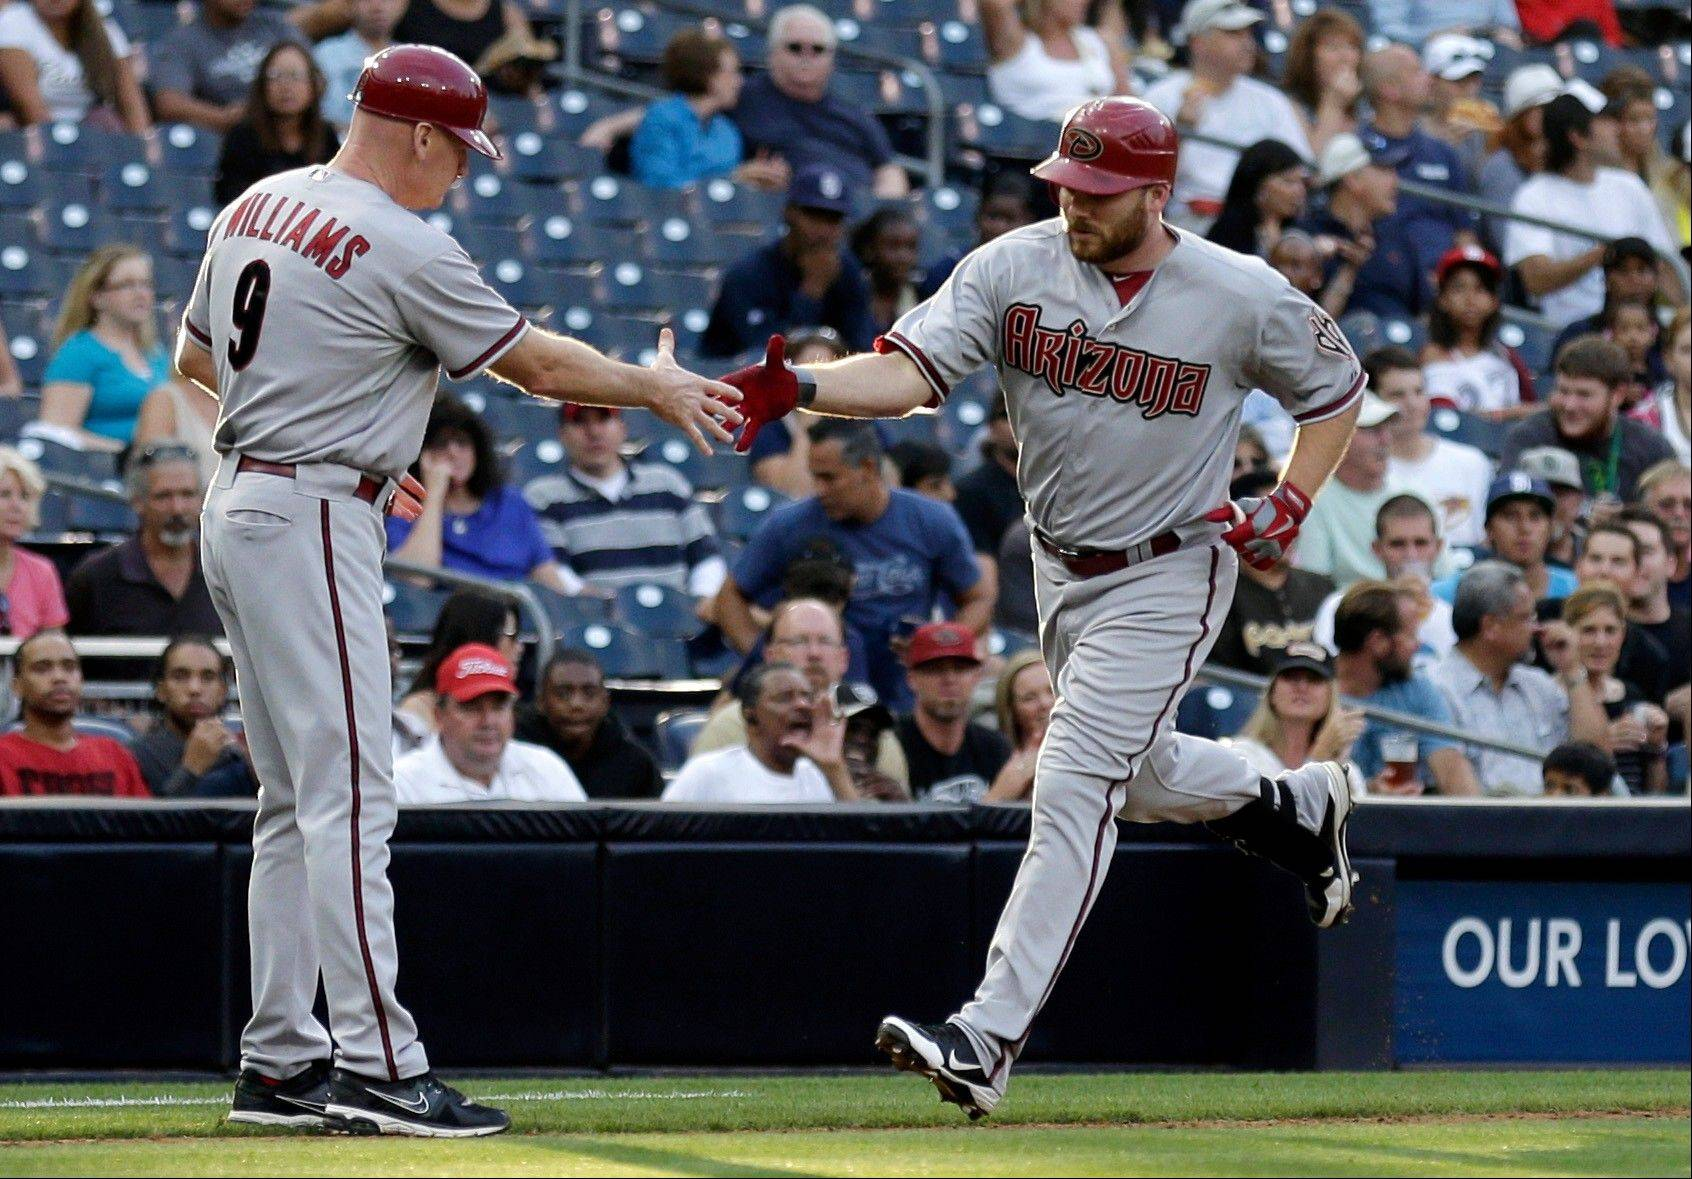 Arizona Diamondbacks Jason Kubel, right, is greeted third base coach Matt Williams after hitting a home run against the San Diego Padres during the third inning Saturday in San Diego.